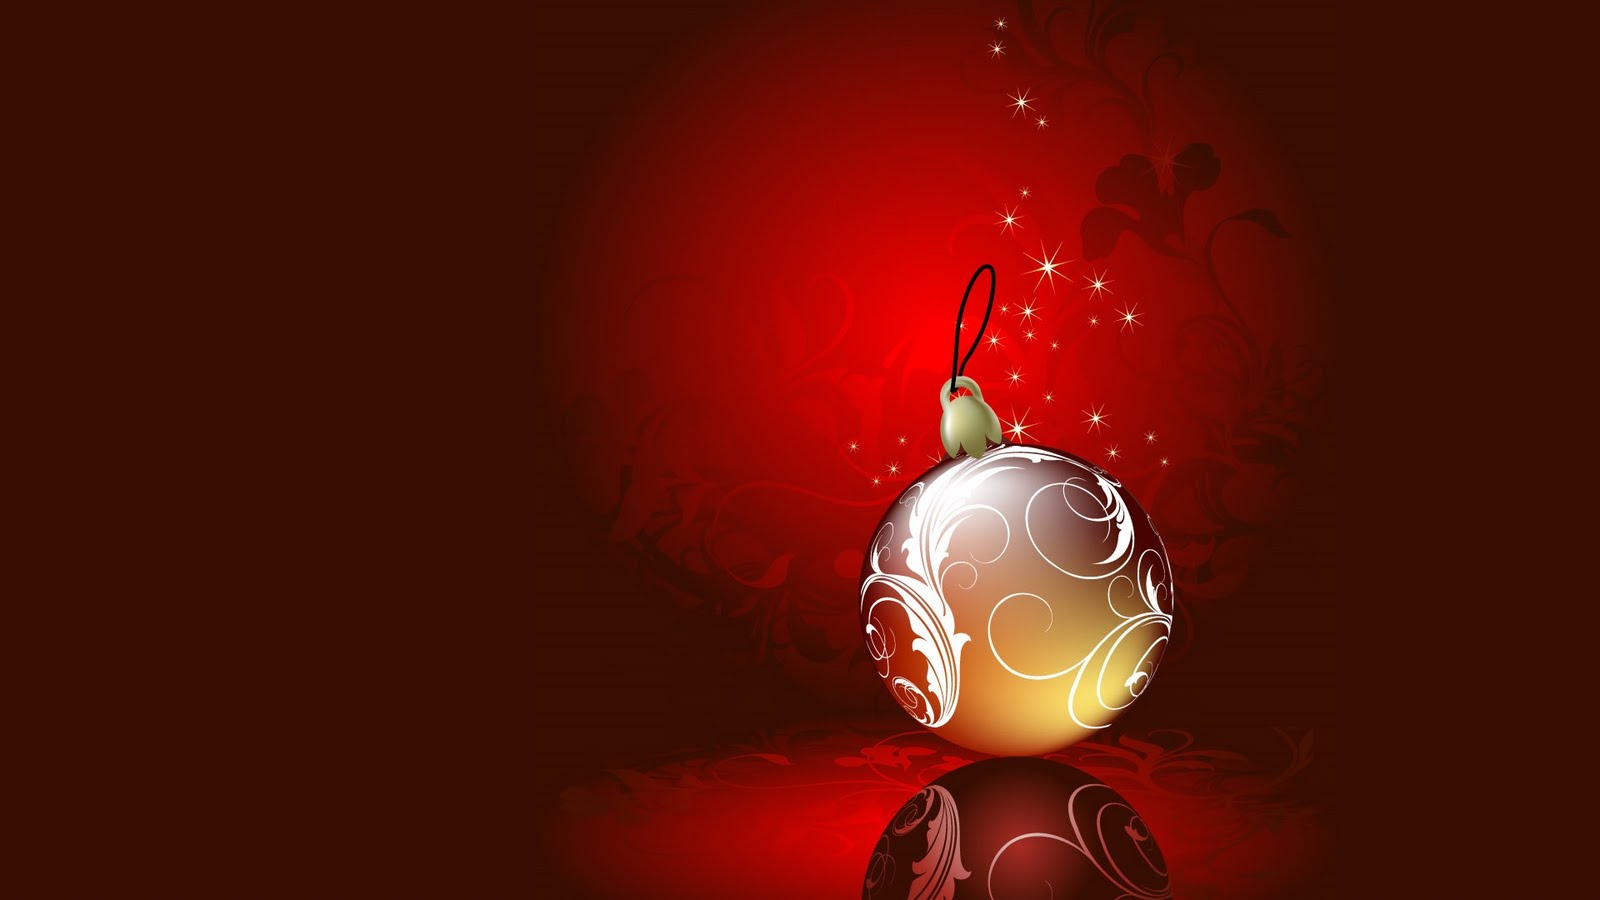 Christmas Ball Ornaments Hd Design PPT Backgrounds